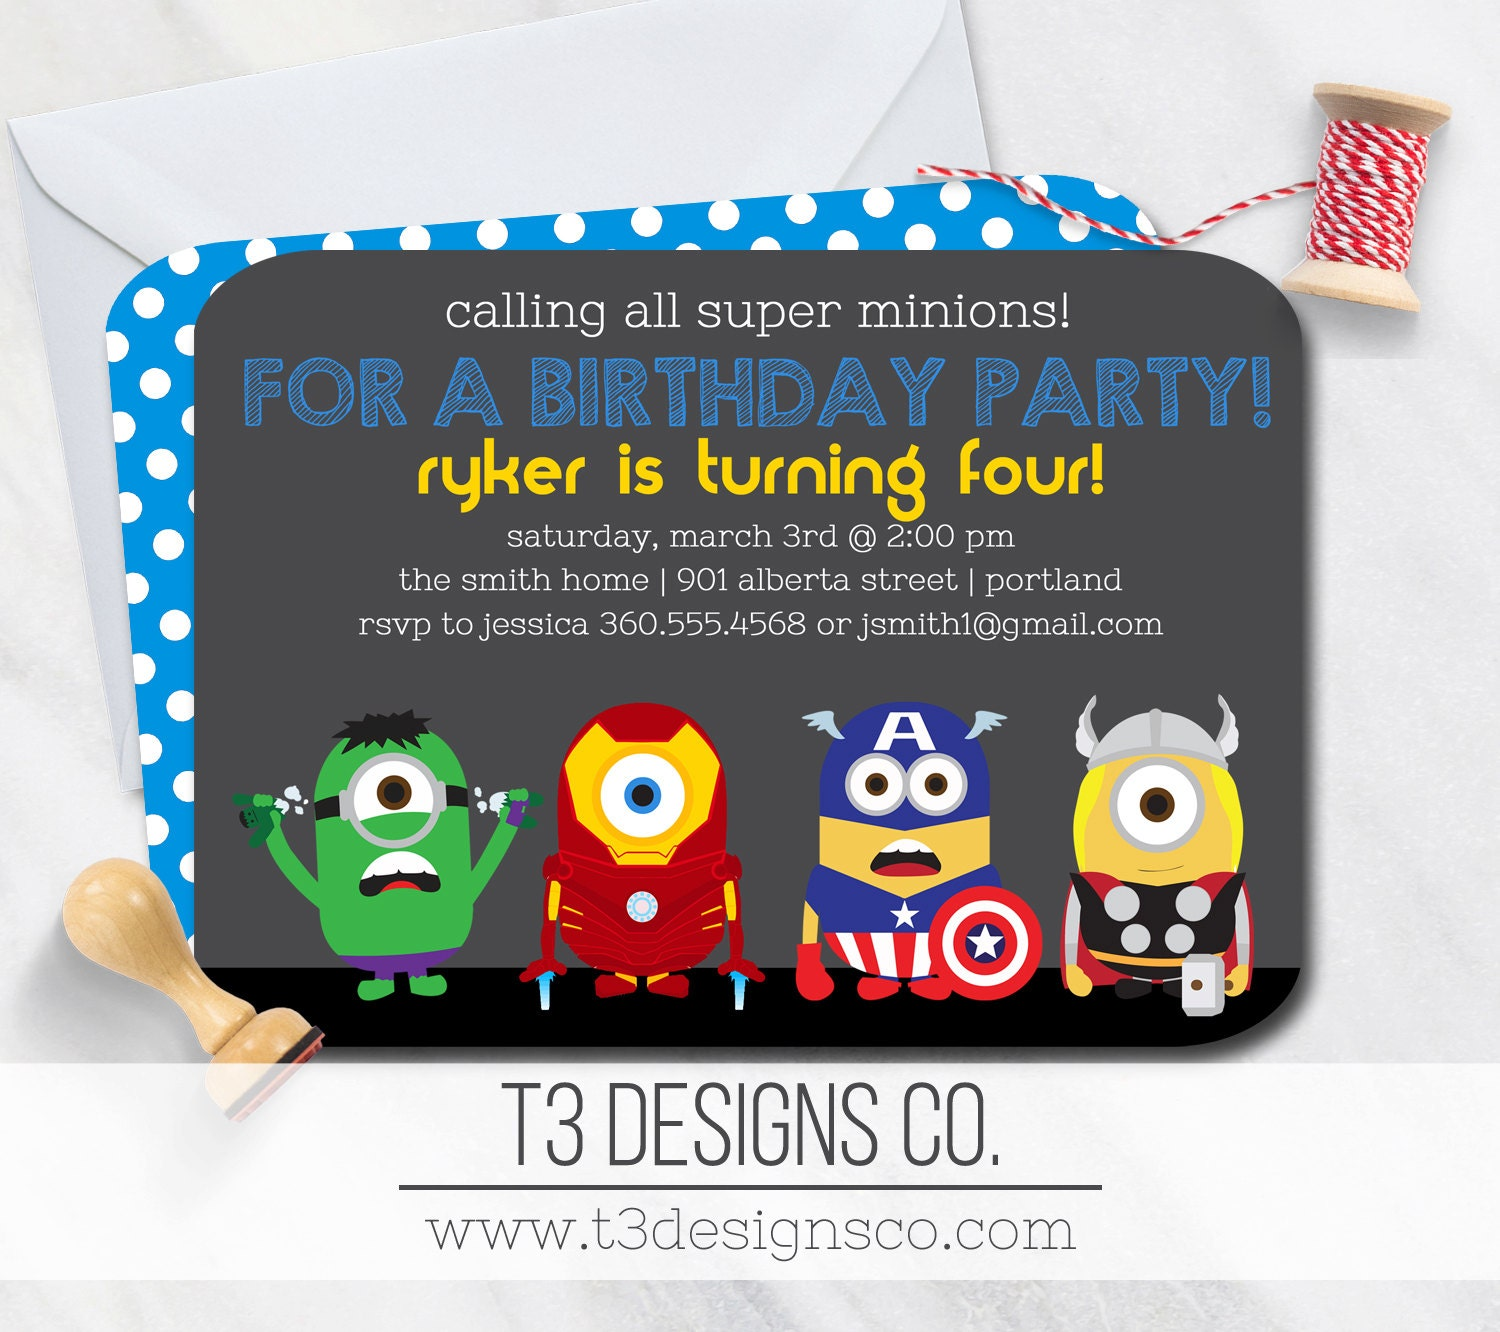 6 Birthday Card Templates: SUPERHERO Birthday Invitation, Super Minions Inspired